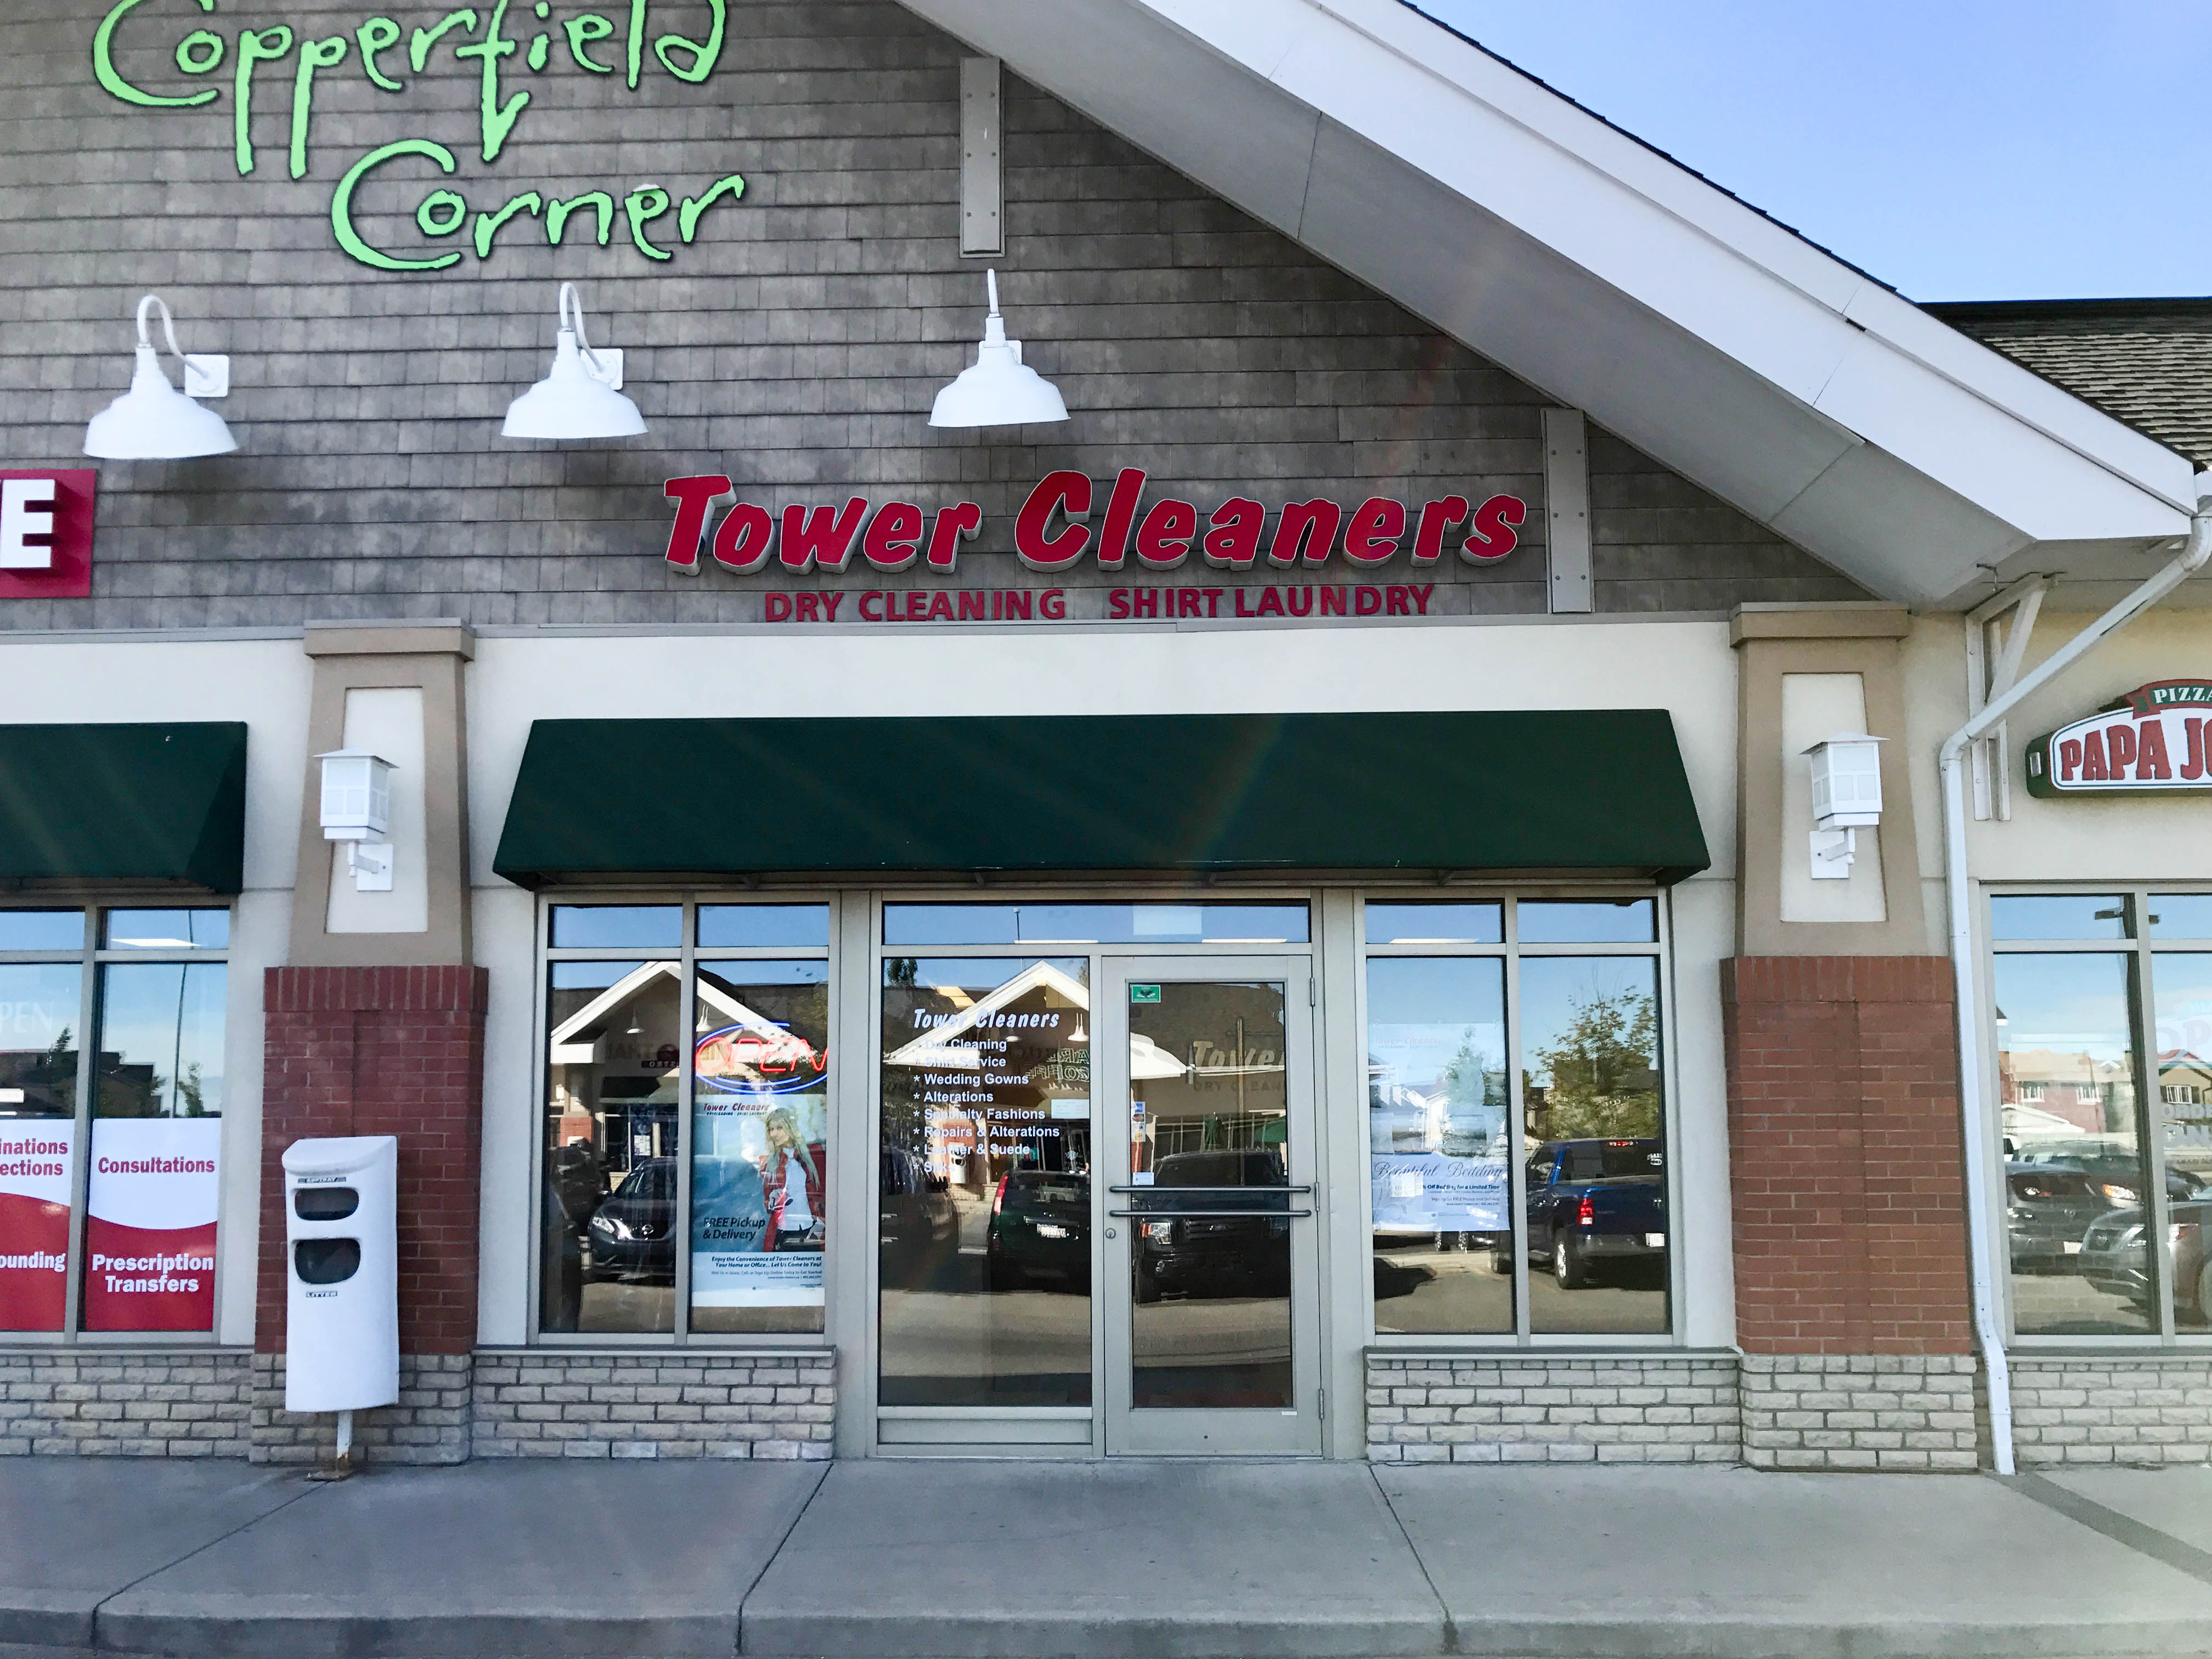 Copperfield Tower Cleaners store. #238 - 15566 McIvor Blvd SE, Calgary, Alberta, (403) 257-1743